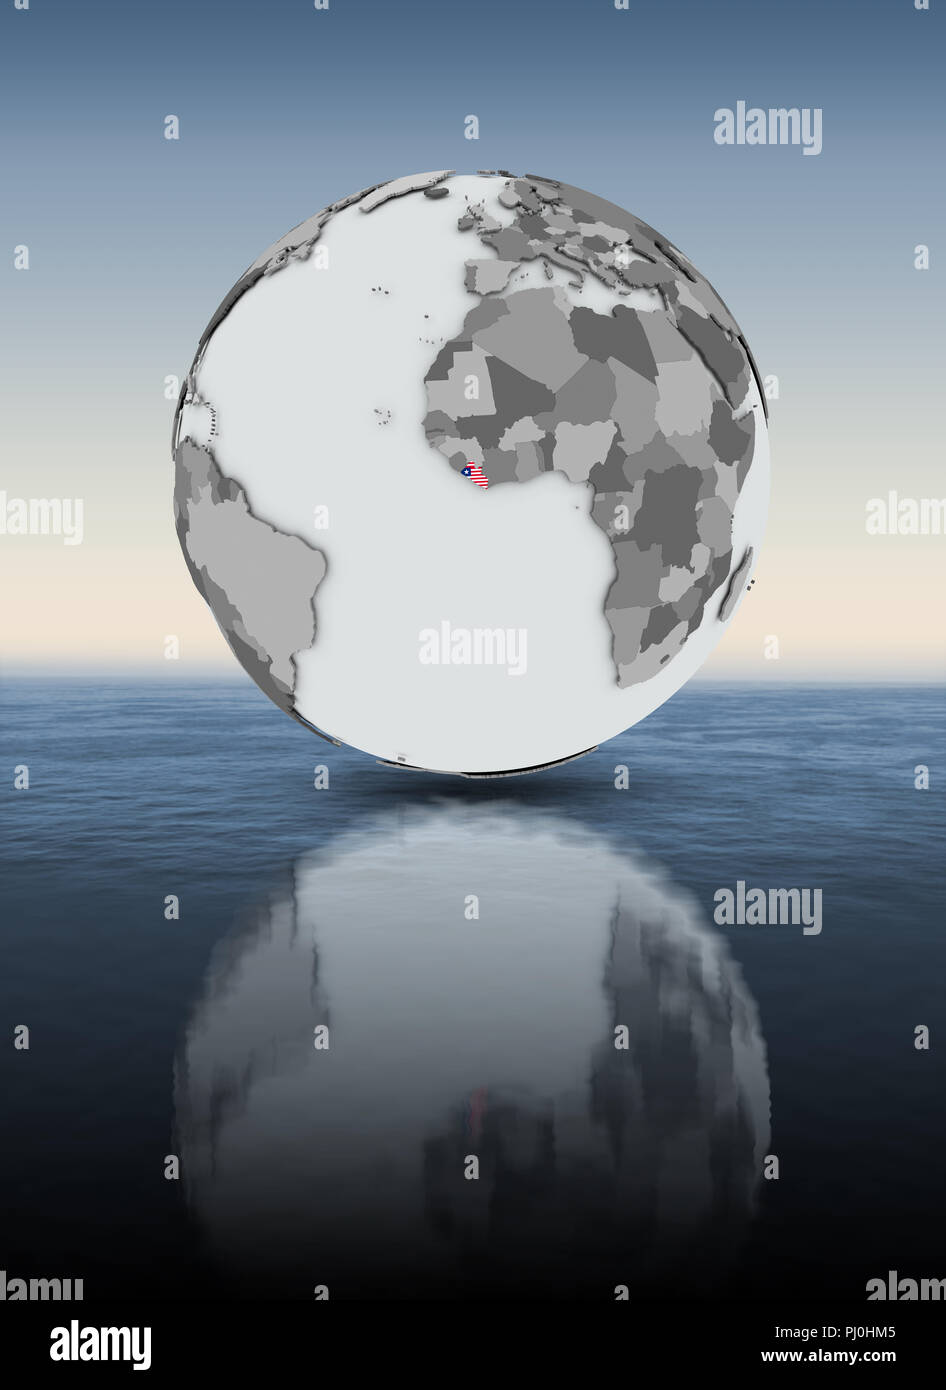 Liberia with flag on globe above water. 3D illustration. - Stock Image